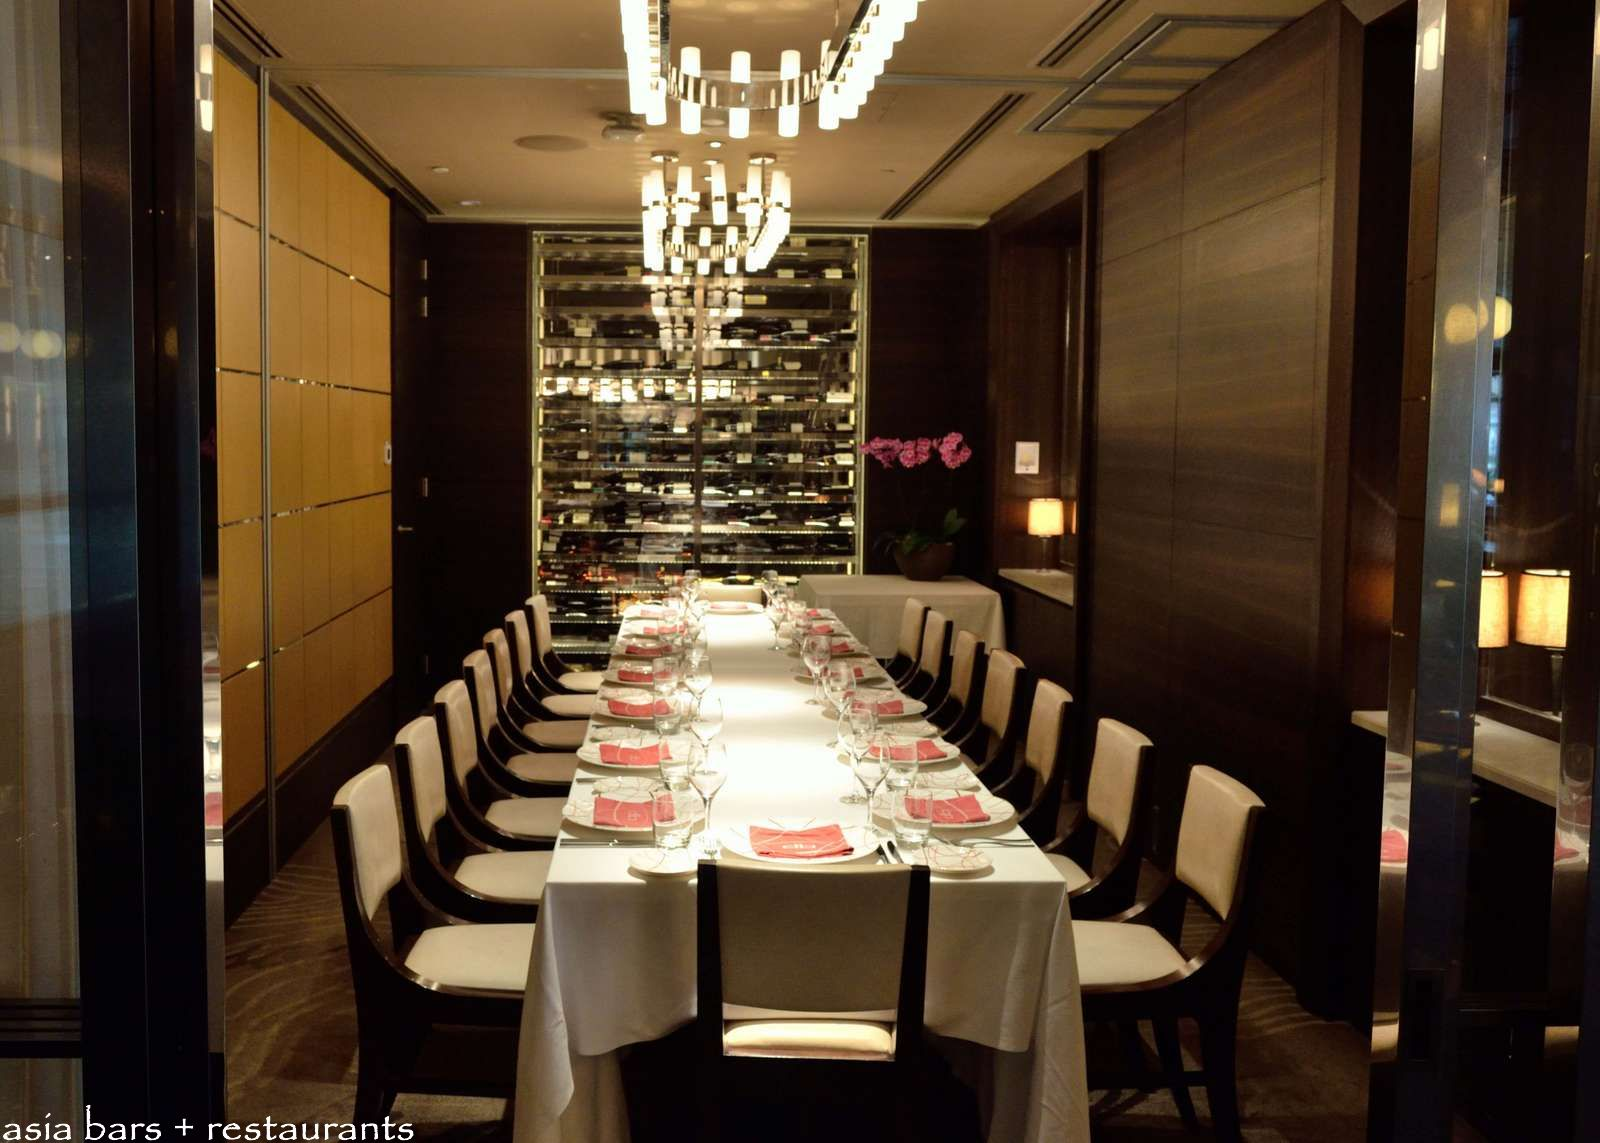 Db Bistro Moderne By Daniel Boulud At Marina Bay Sands